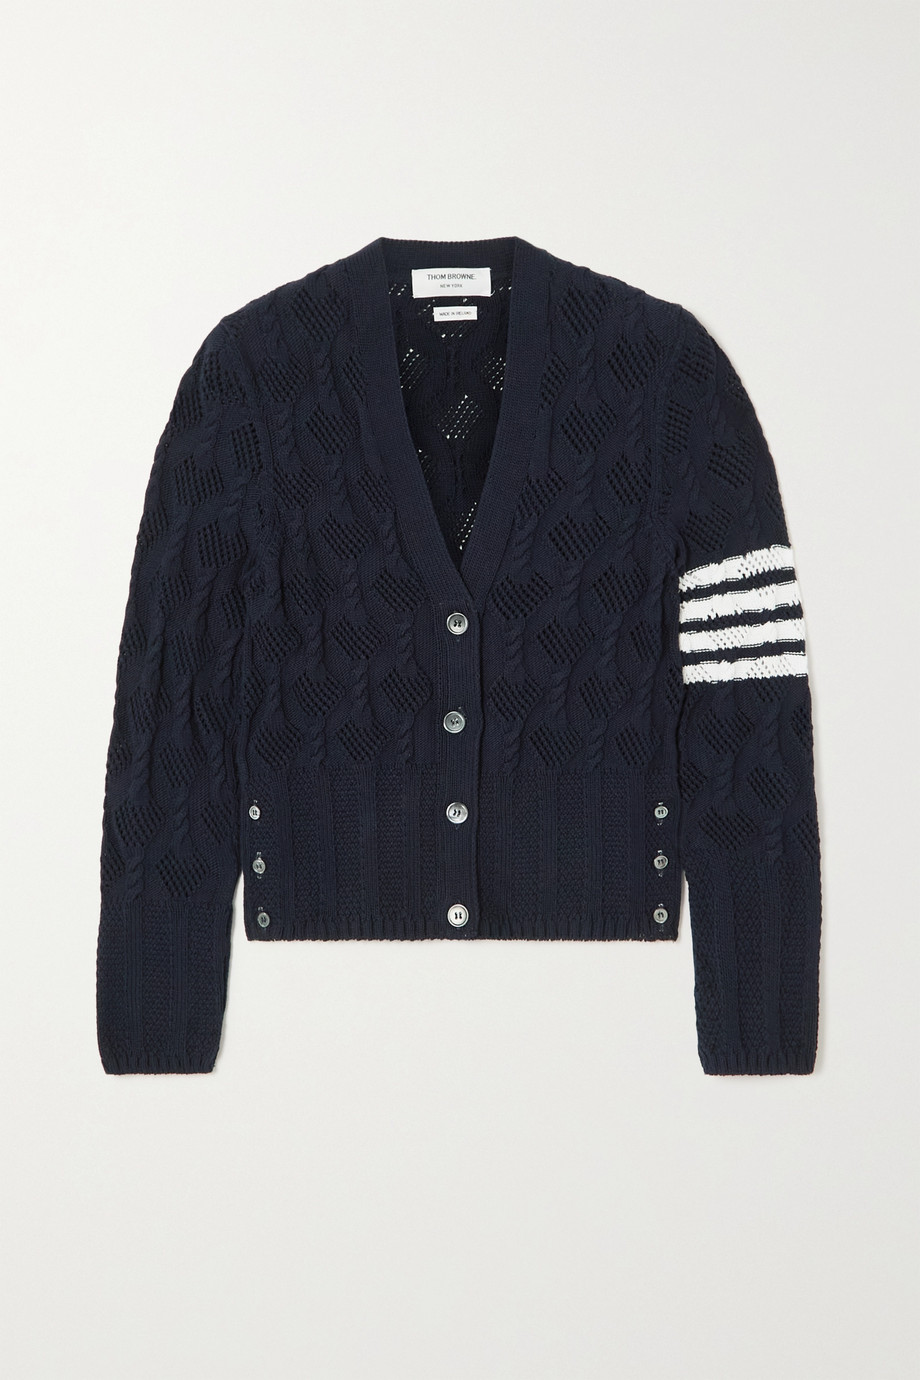 Thom Browne Striped pointelle and cable-knit cotton cardigan